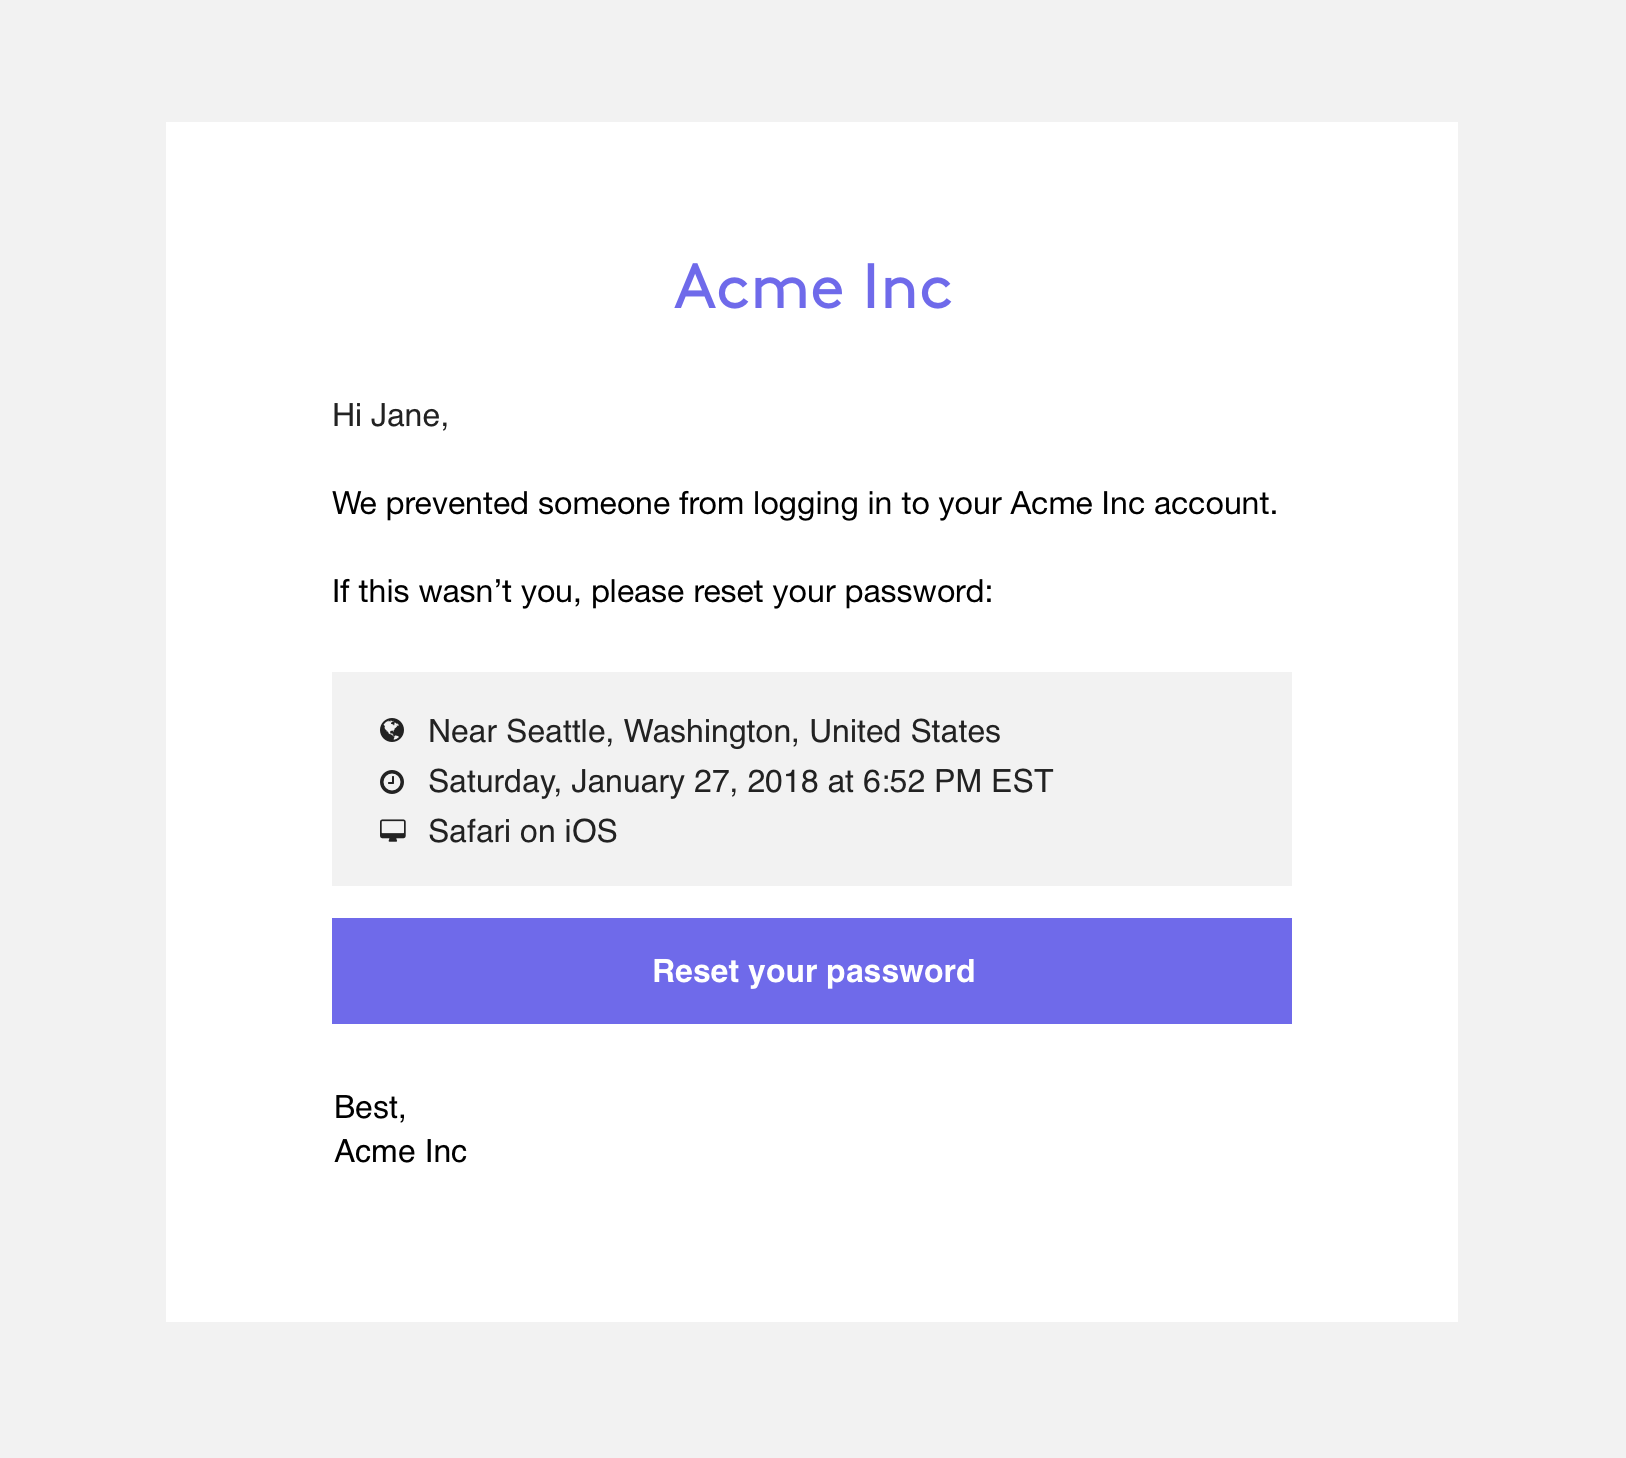 An example of an email that can be sent to a user to notify them of an account breach